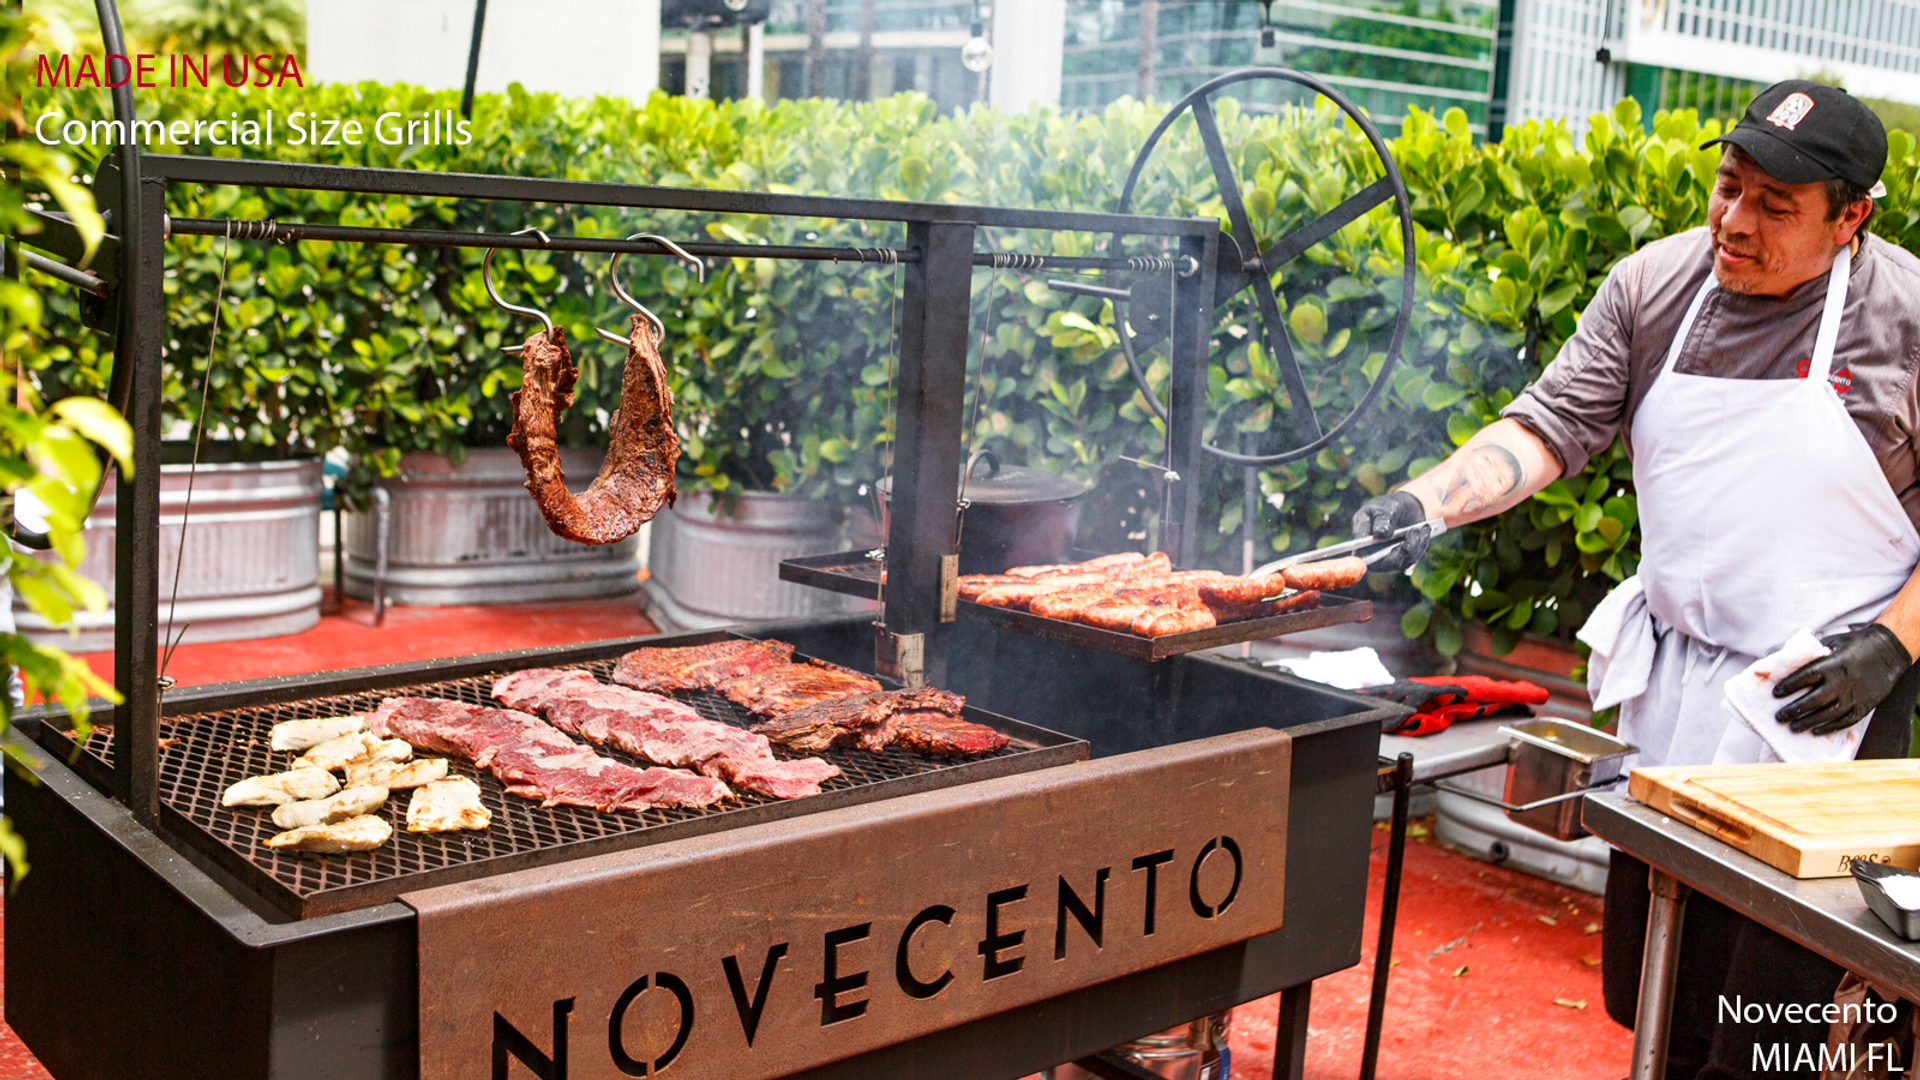 Commercial Argentine Style BBQ Grill cooking mouth watering asado.